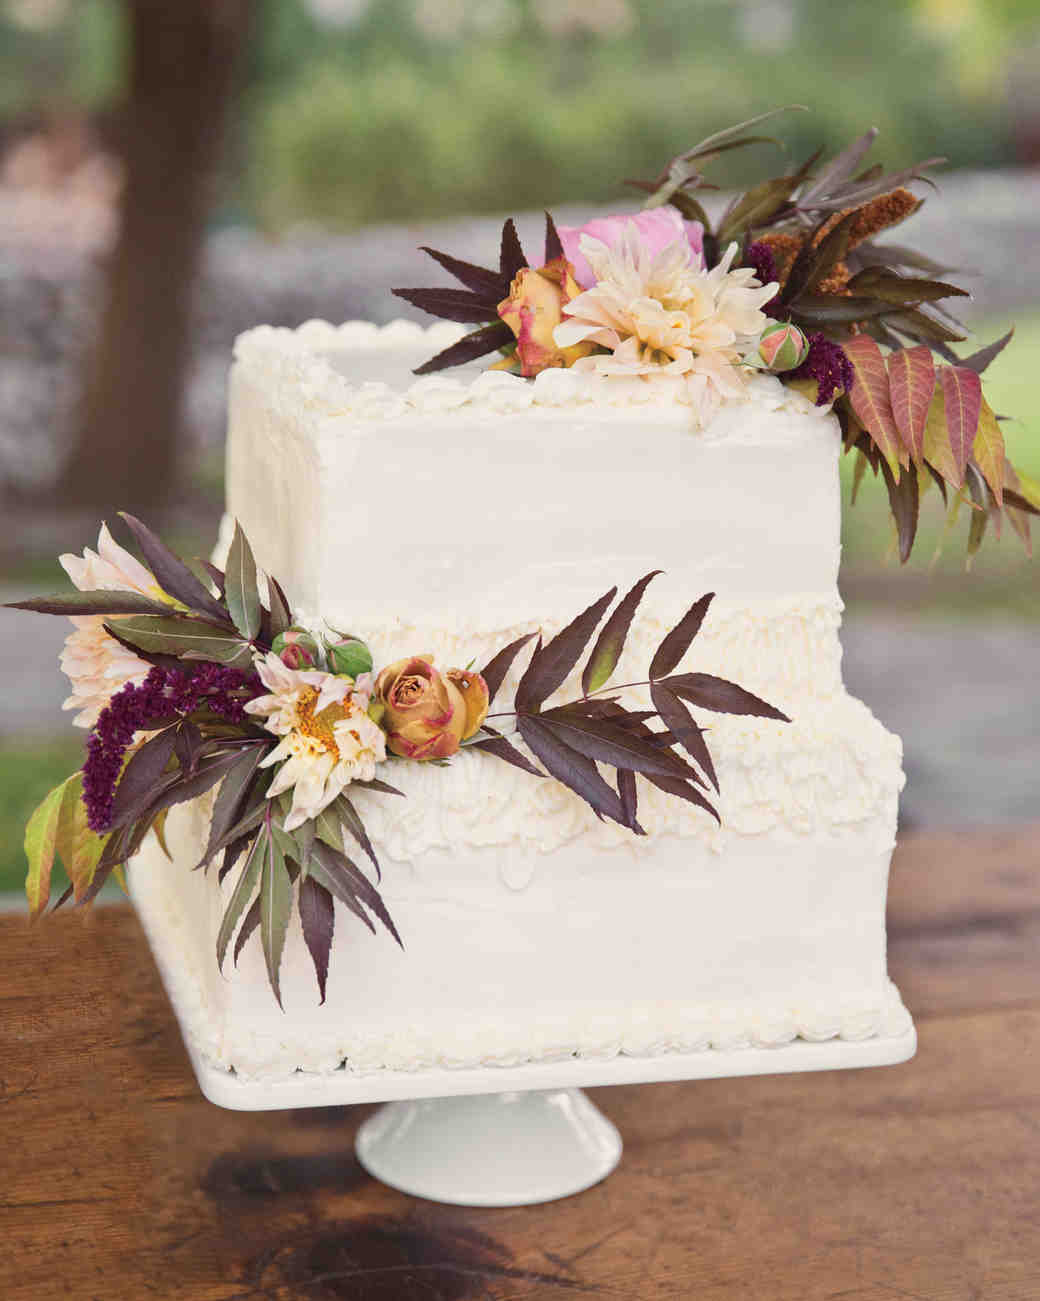 Two-Tiered Square White Wedding Cake with Pistachio Foliage and Dahlias